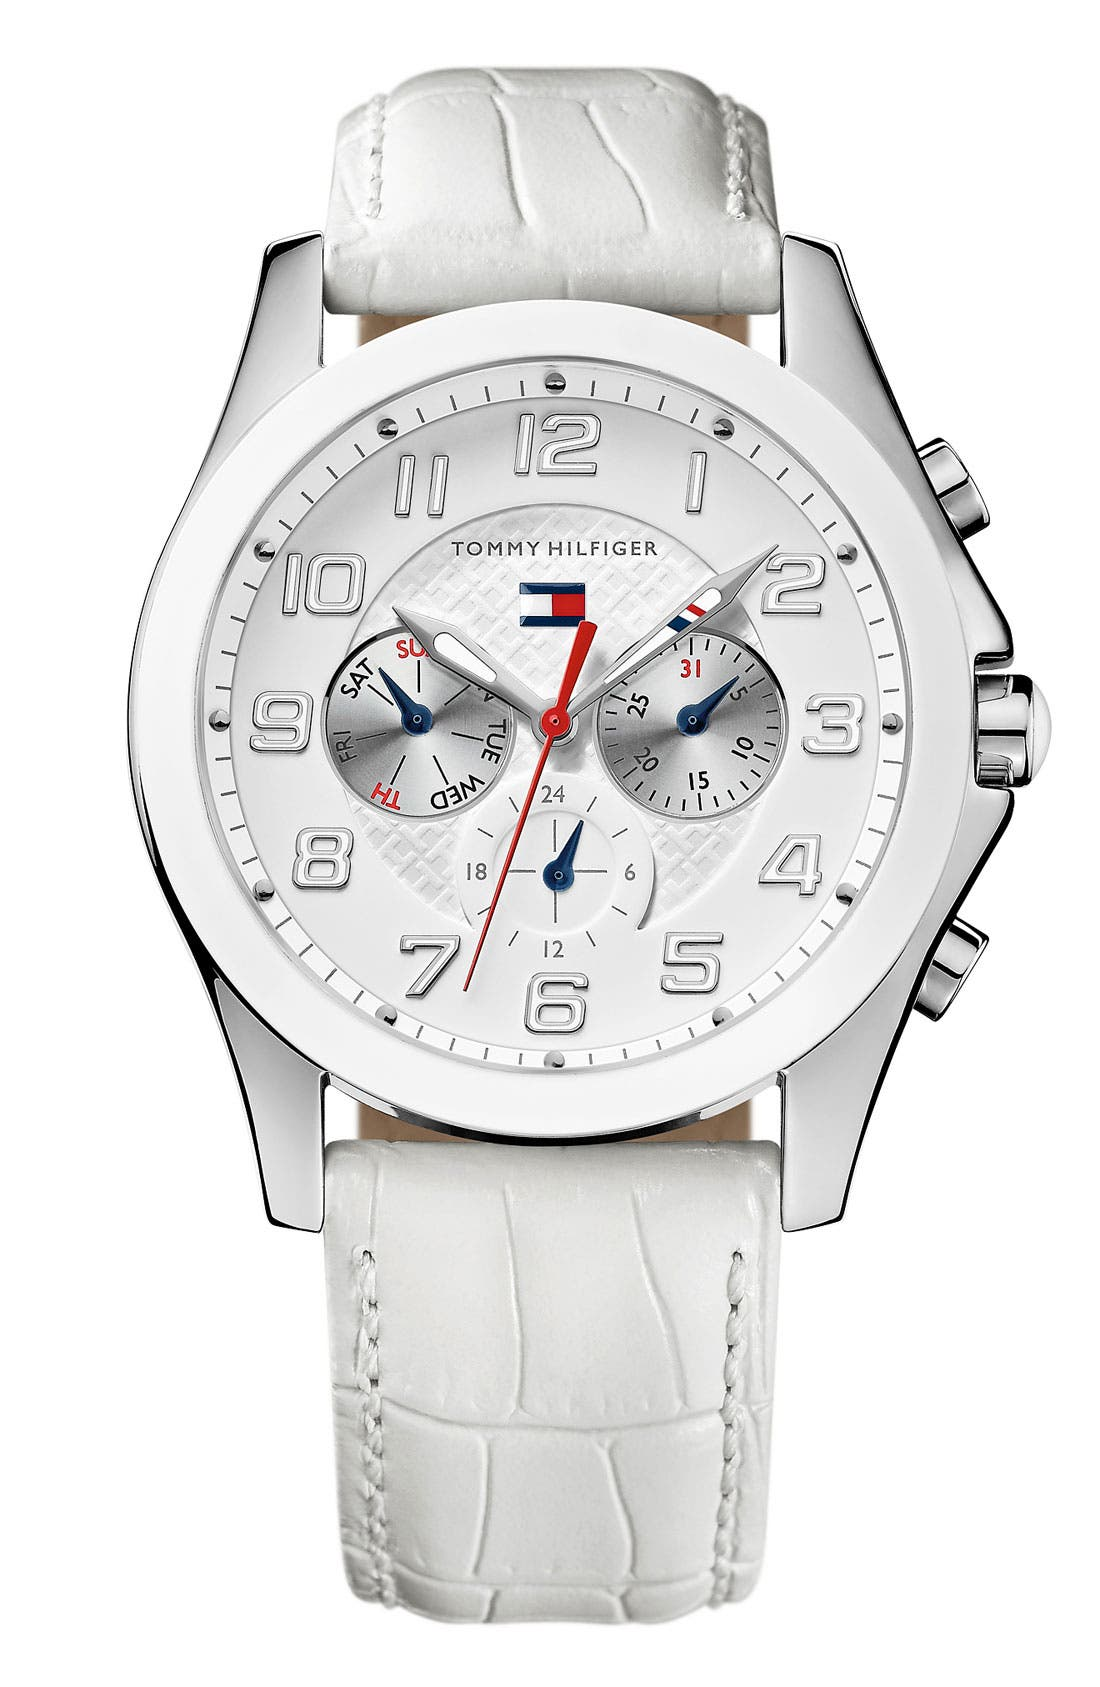 Main Image - Tommy Hilfiger Multifunction Embossed Leather Watch, 41mm